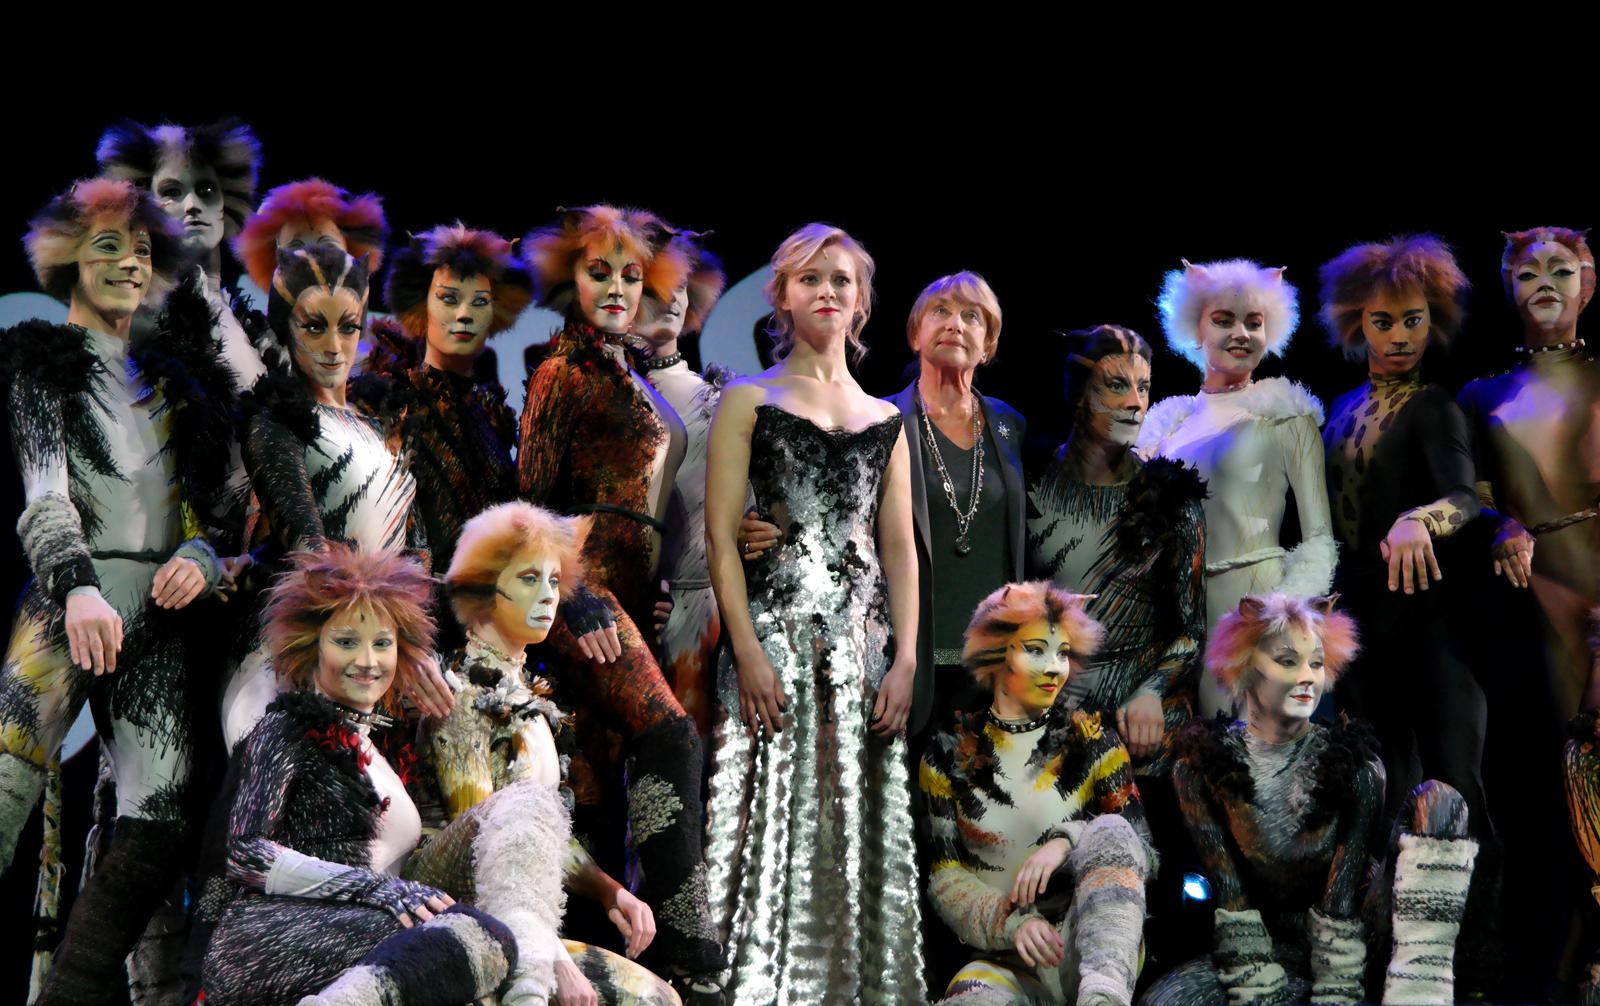 Prisca Demarez et la troupe anglaise de Cats le Musical Gillian Lynne chorégraphe Théâtre Mogador photo scène by united states of paris blog